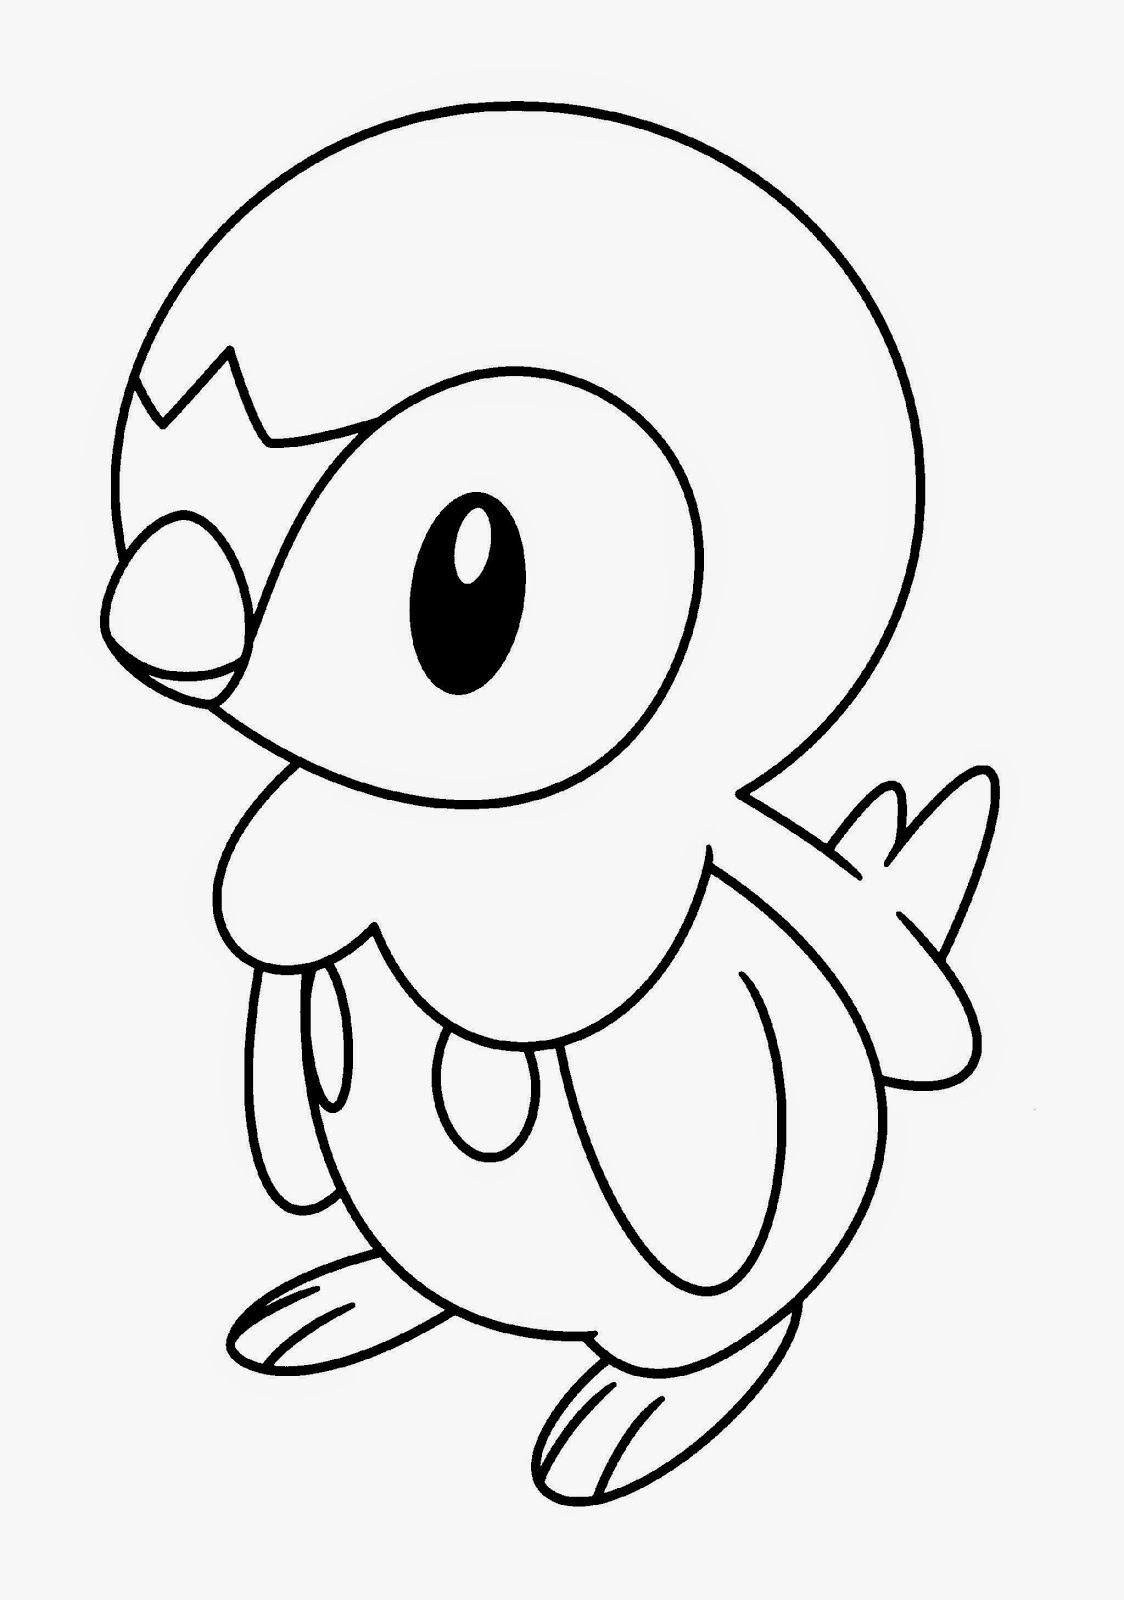 pokemon color 15 pokemon coloring pages for kids gtgt disney coloring pages pokemon color